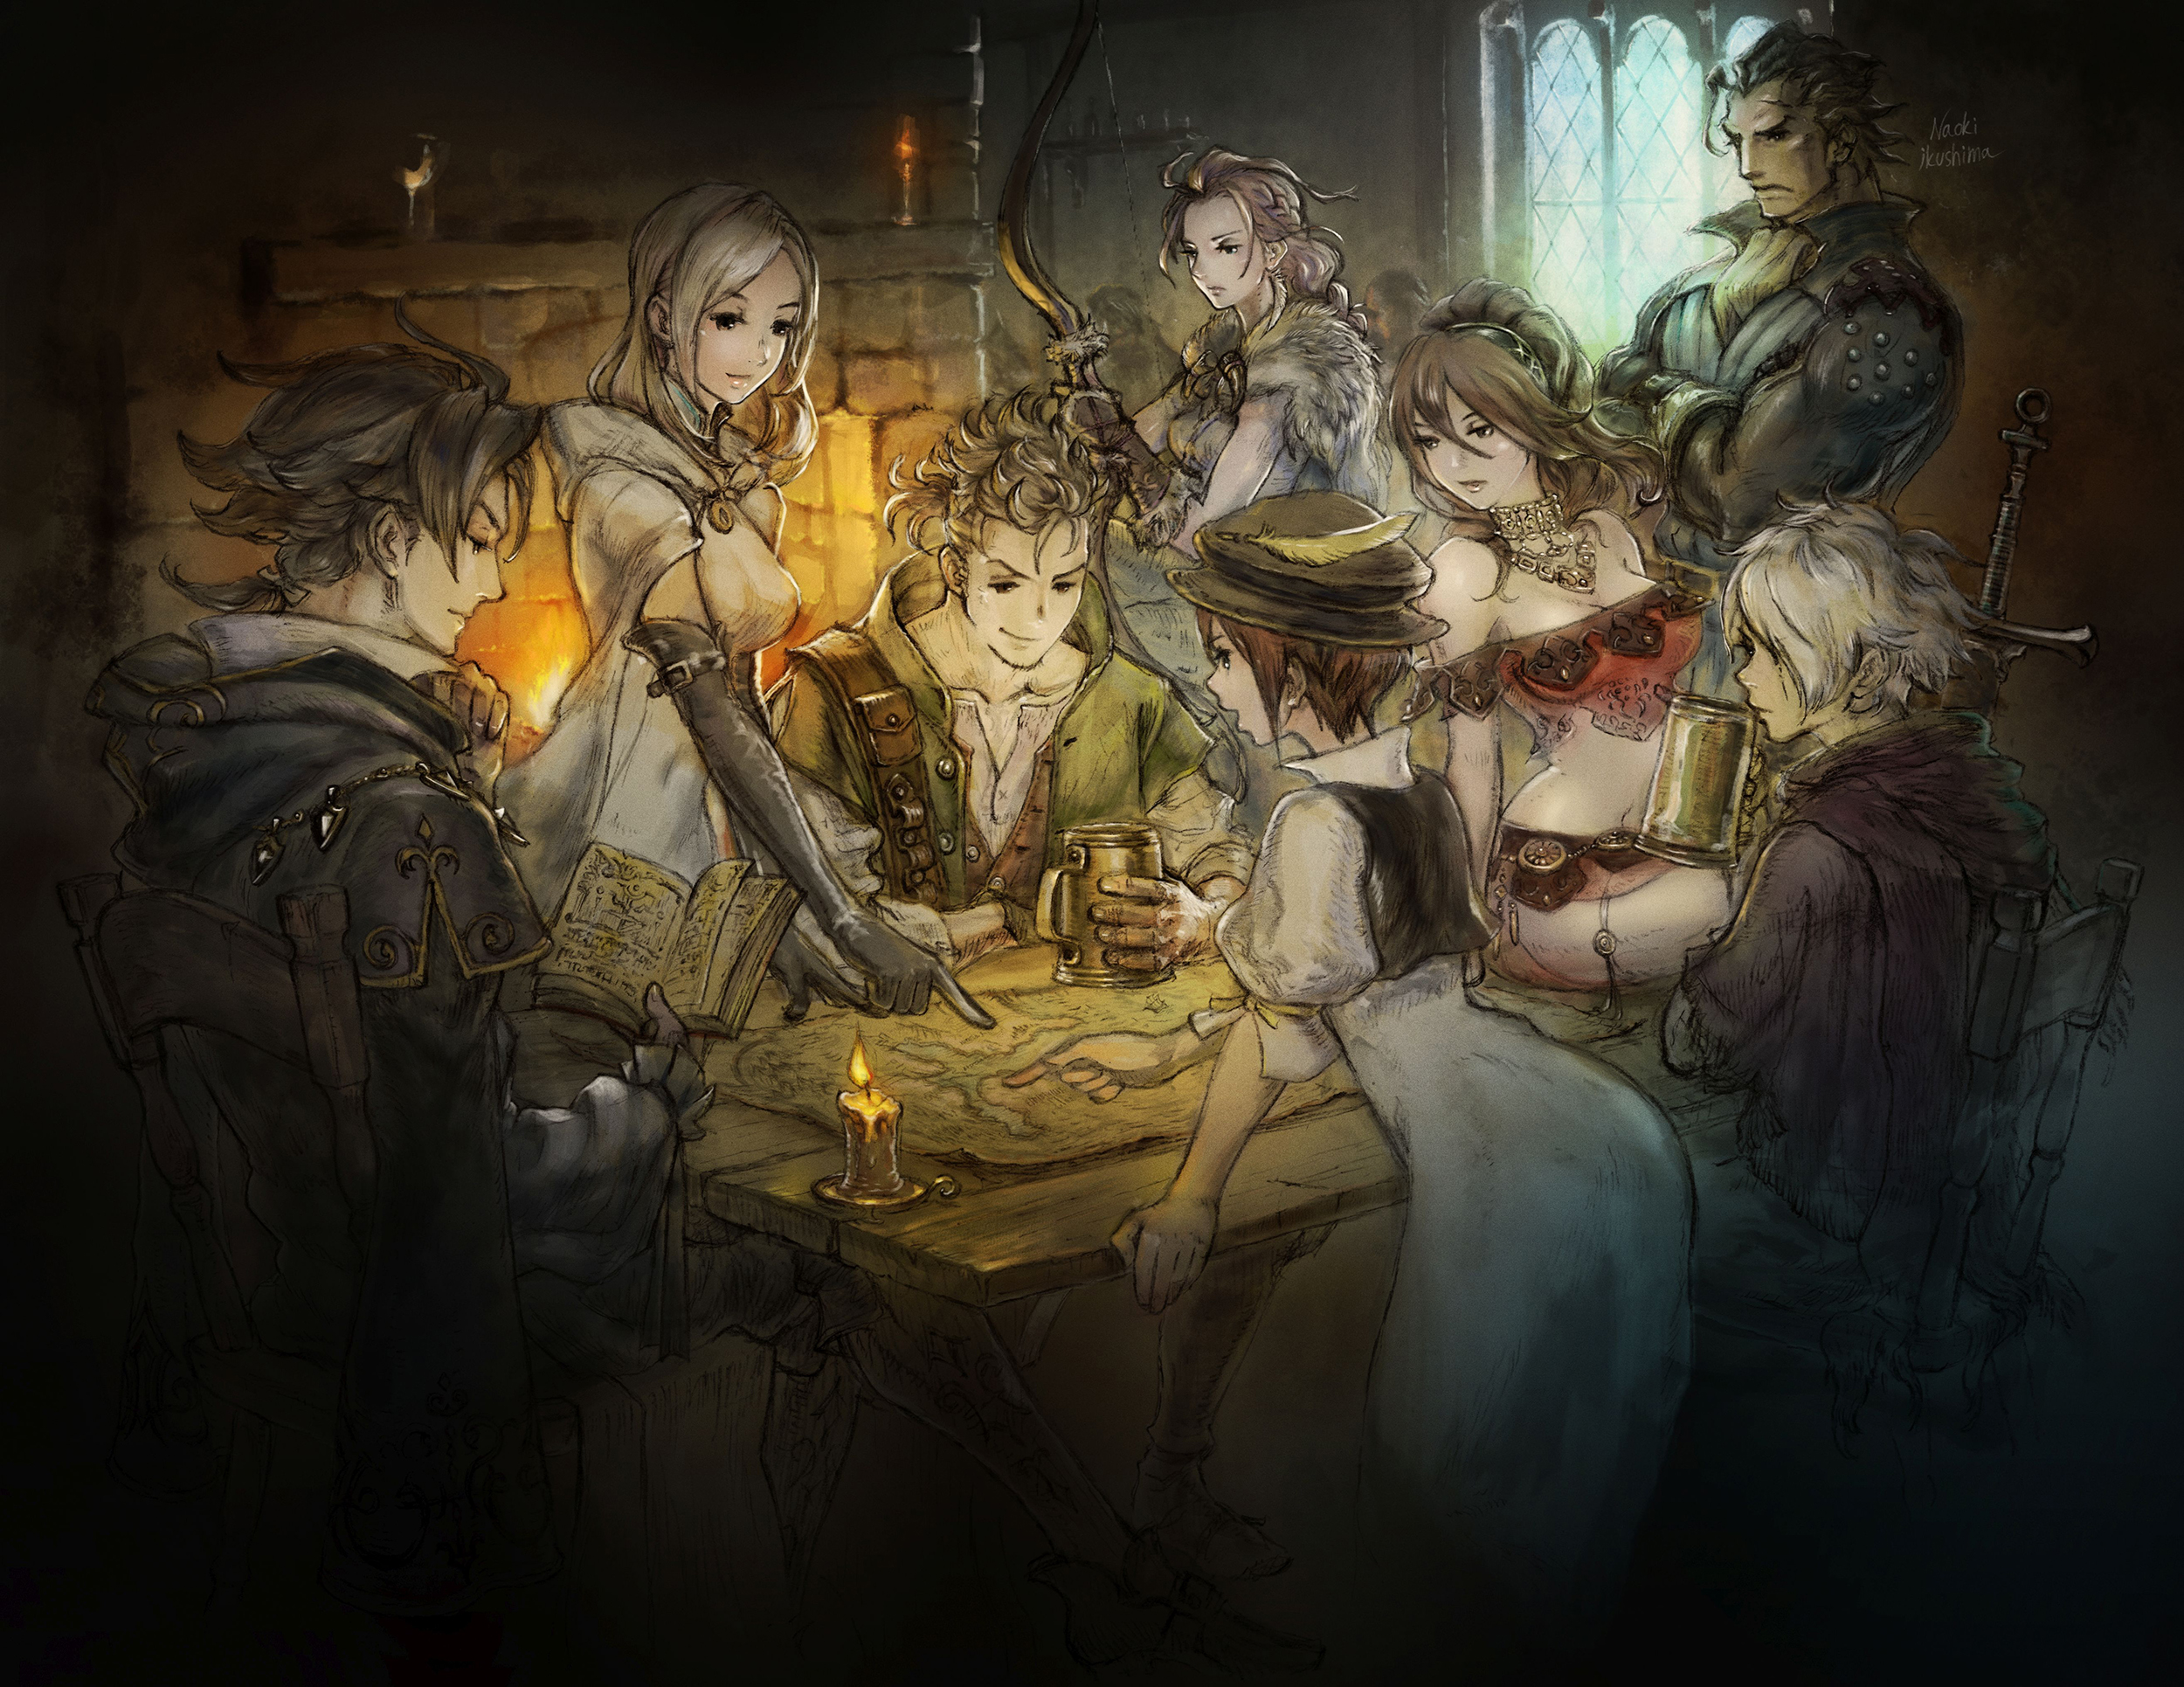 Project Octopath Traveler Art 2